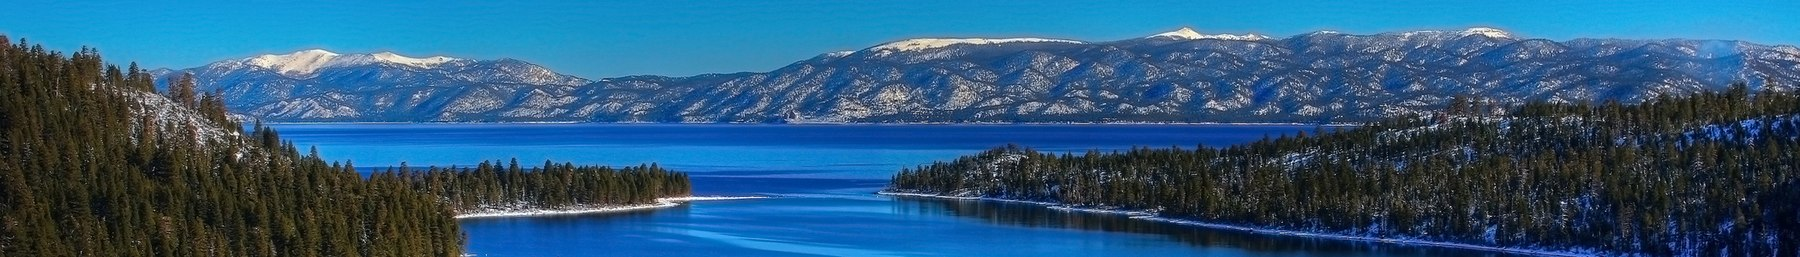 Lake Tahoe banner Emerald Bay.jpg